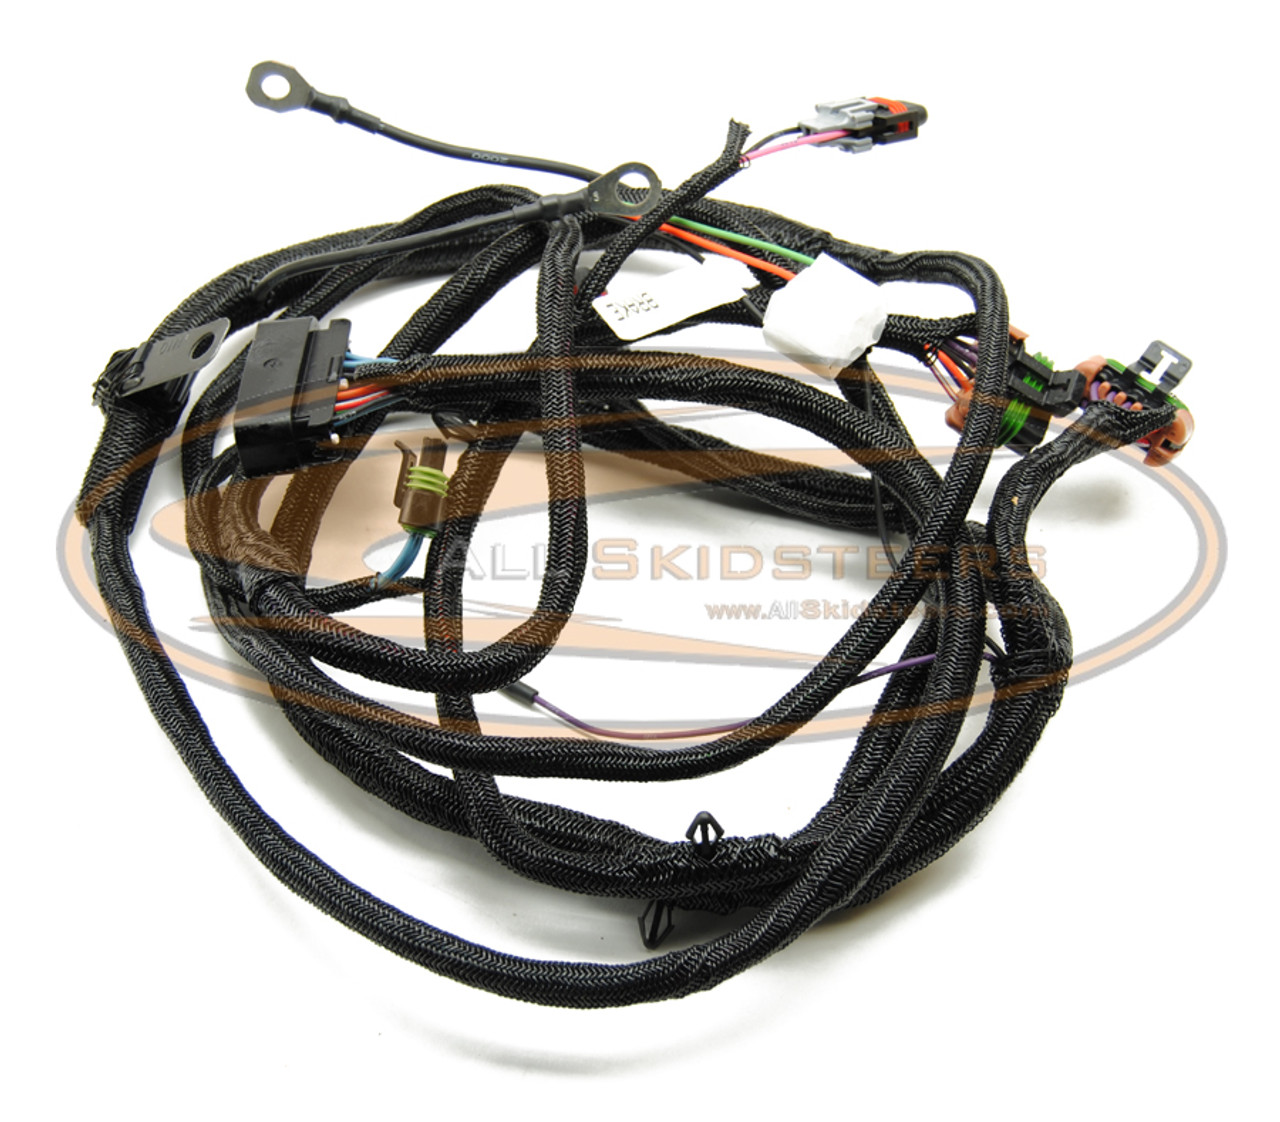 small resolution of cab wiring harness standard for bobcat skid steer replaces oem 6727178